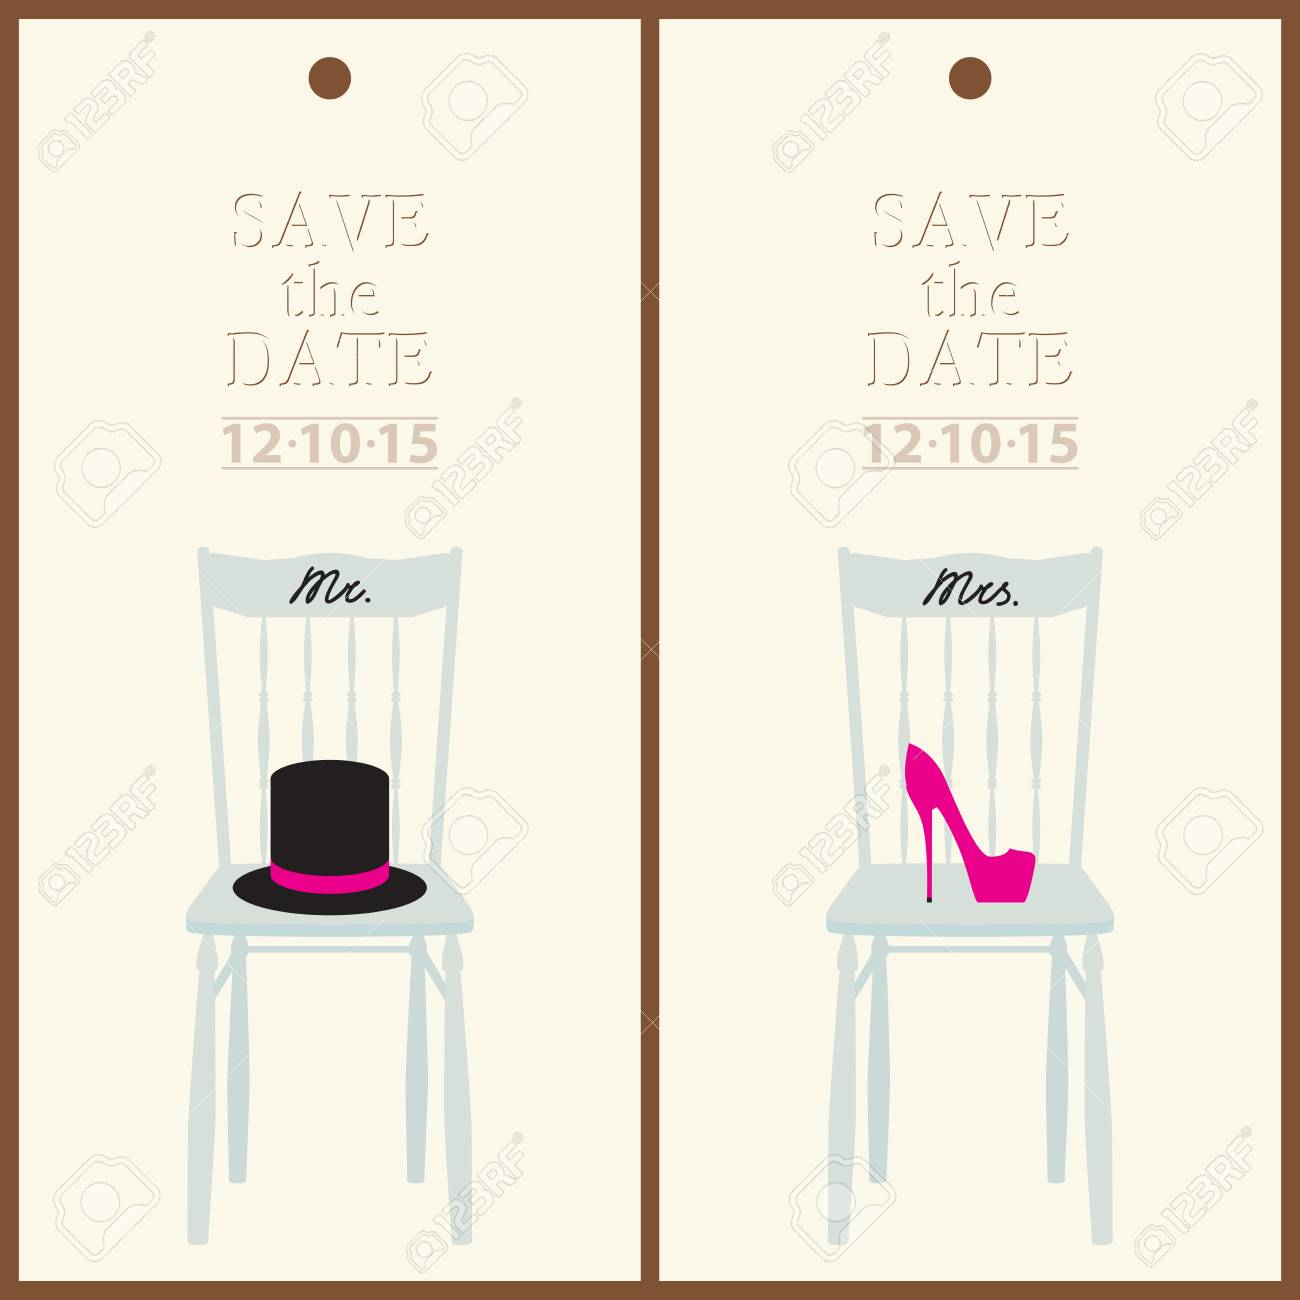 Save The Date Wedding Invitation Card Mr Mrs Template Vector – Save the Date Wedding Invite